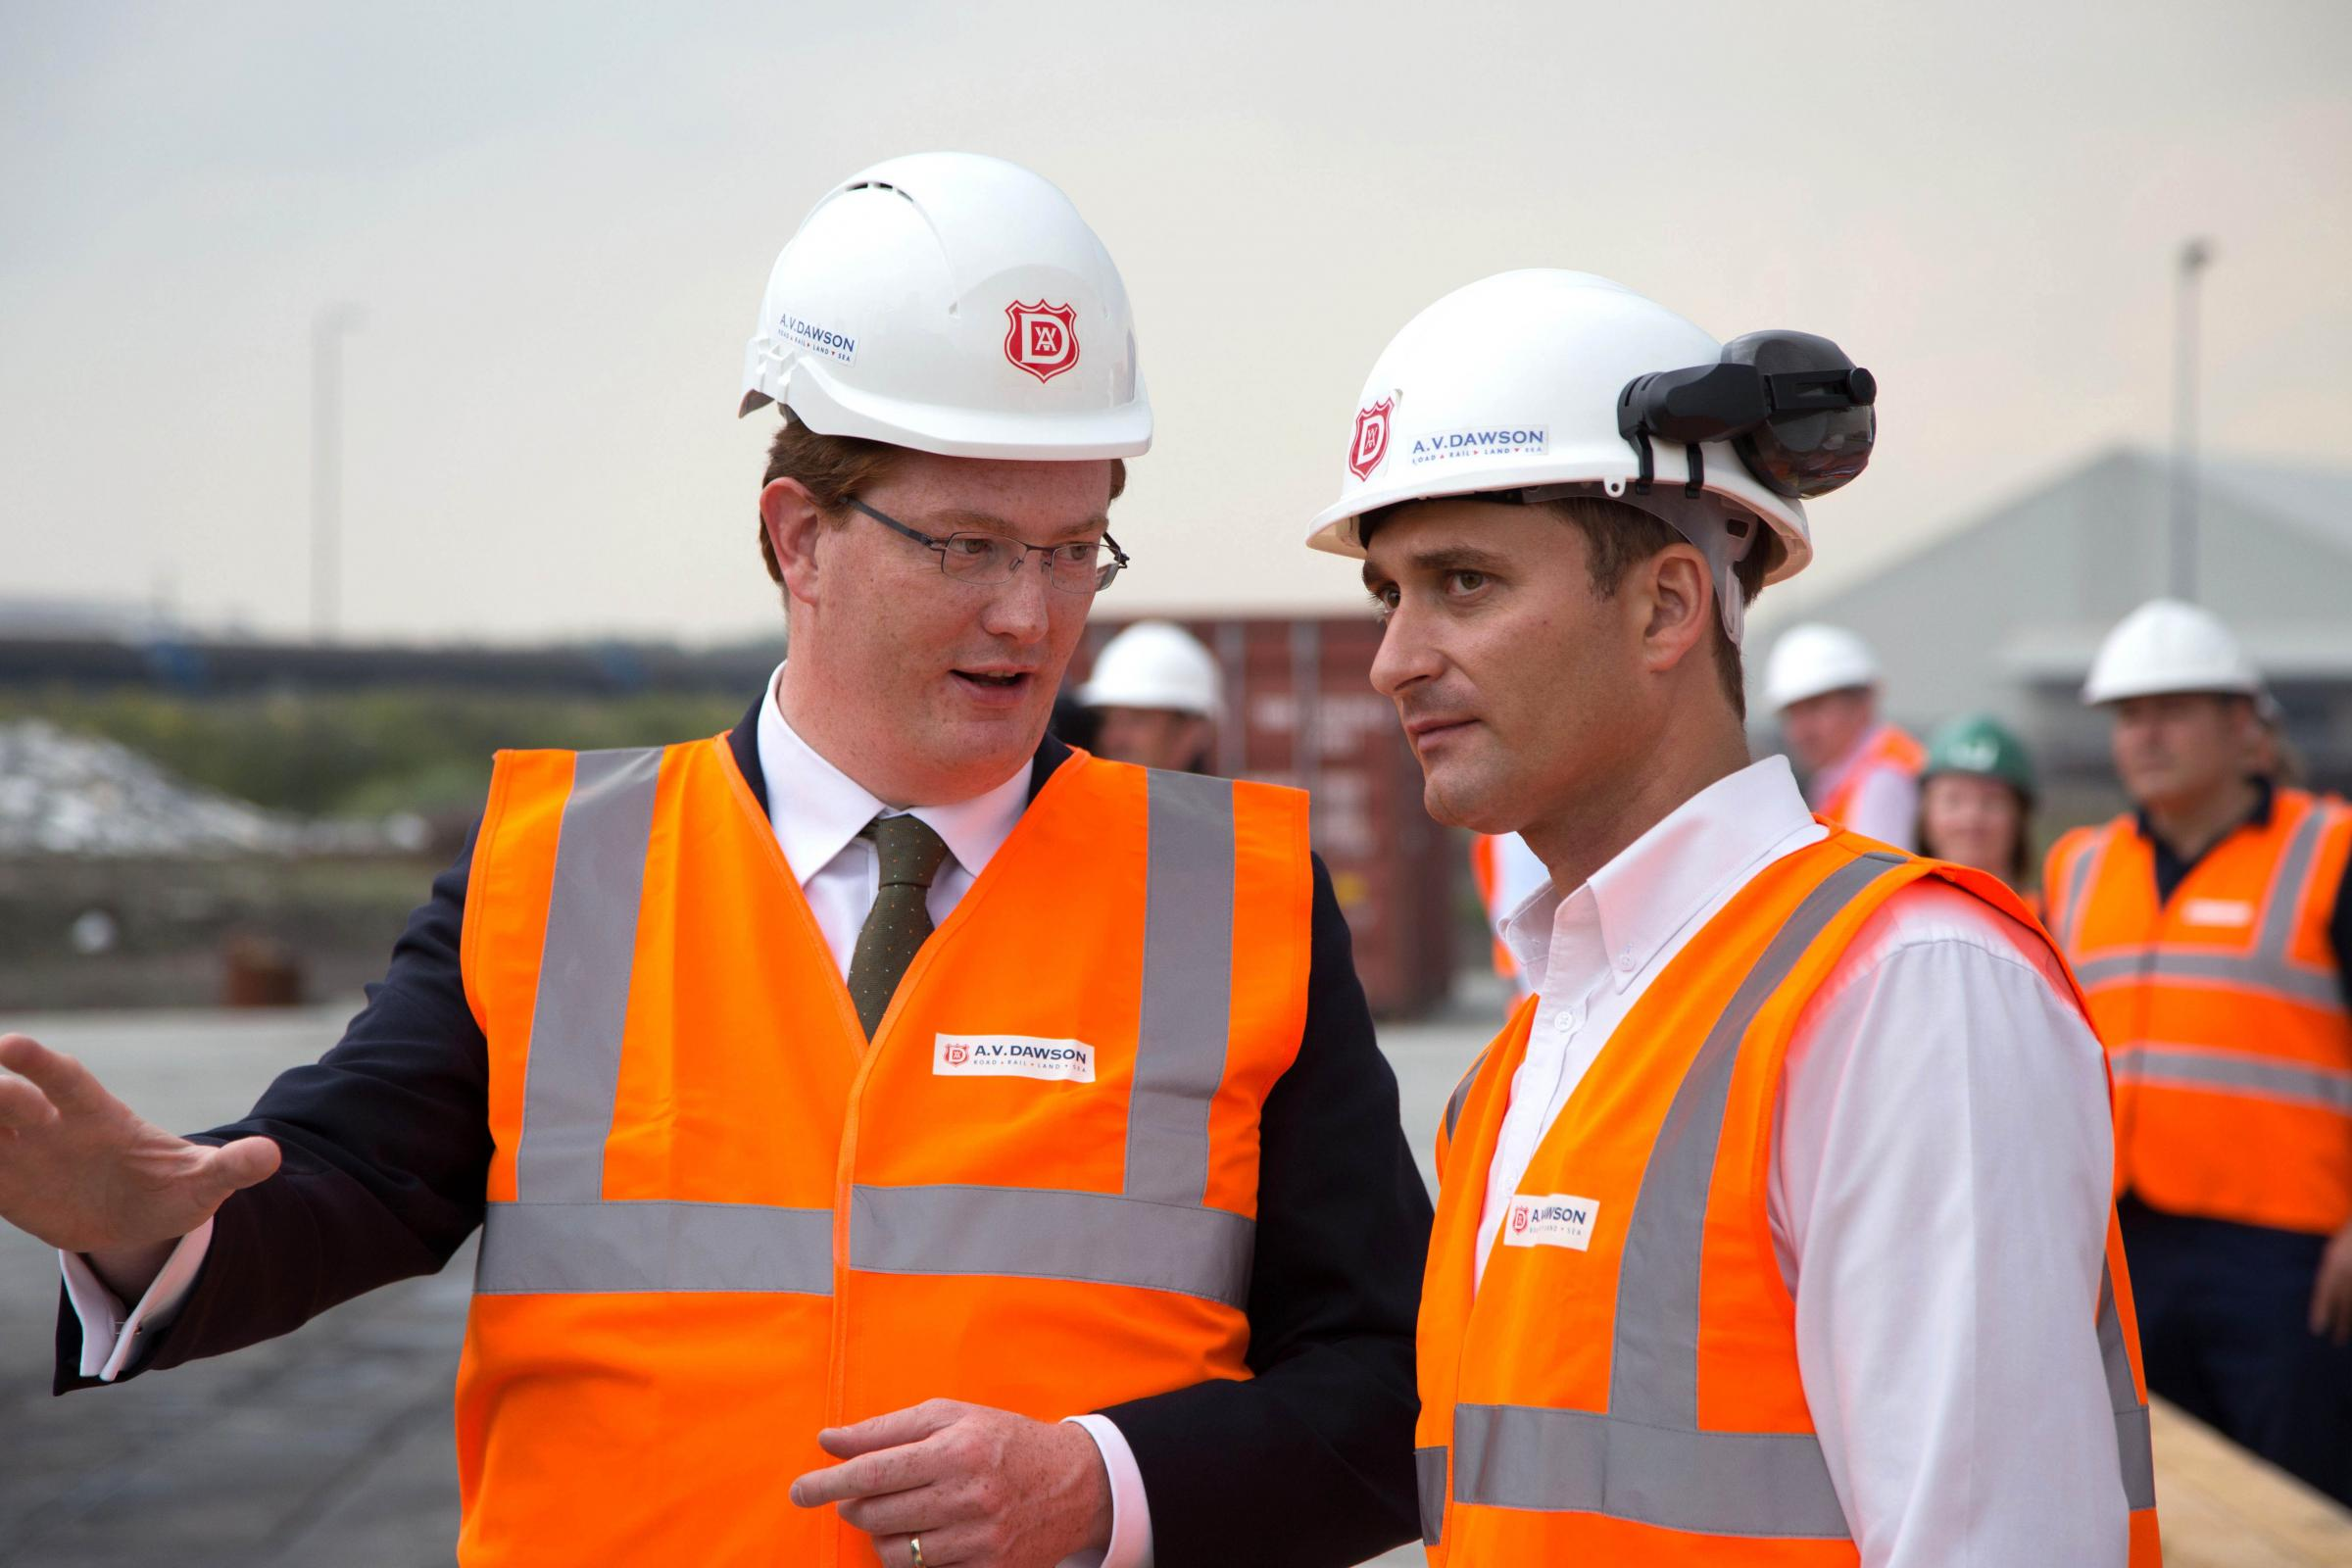 'PLEASING INVESTMENT': Danny Alexander, Treasury Chief Secretary, has hailed business investment. He is pictured with Gary Dawson, managing director of Middlesbrough distribution firm AV Dawson, during a visit to the